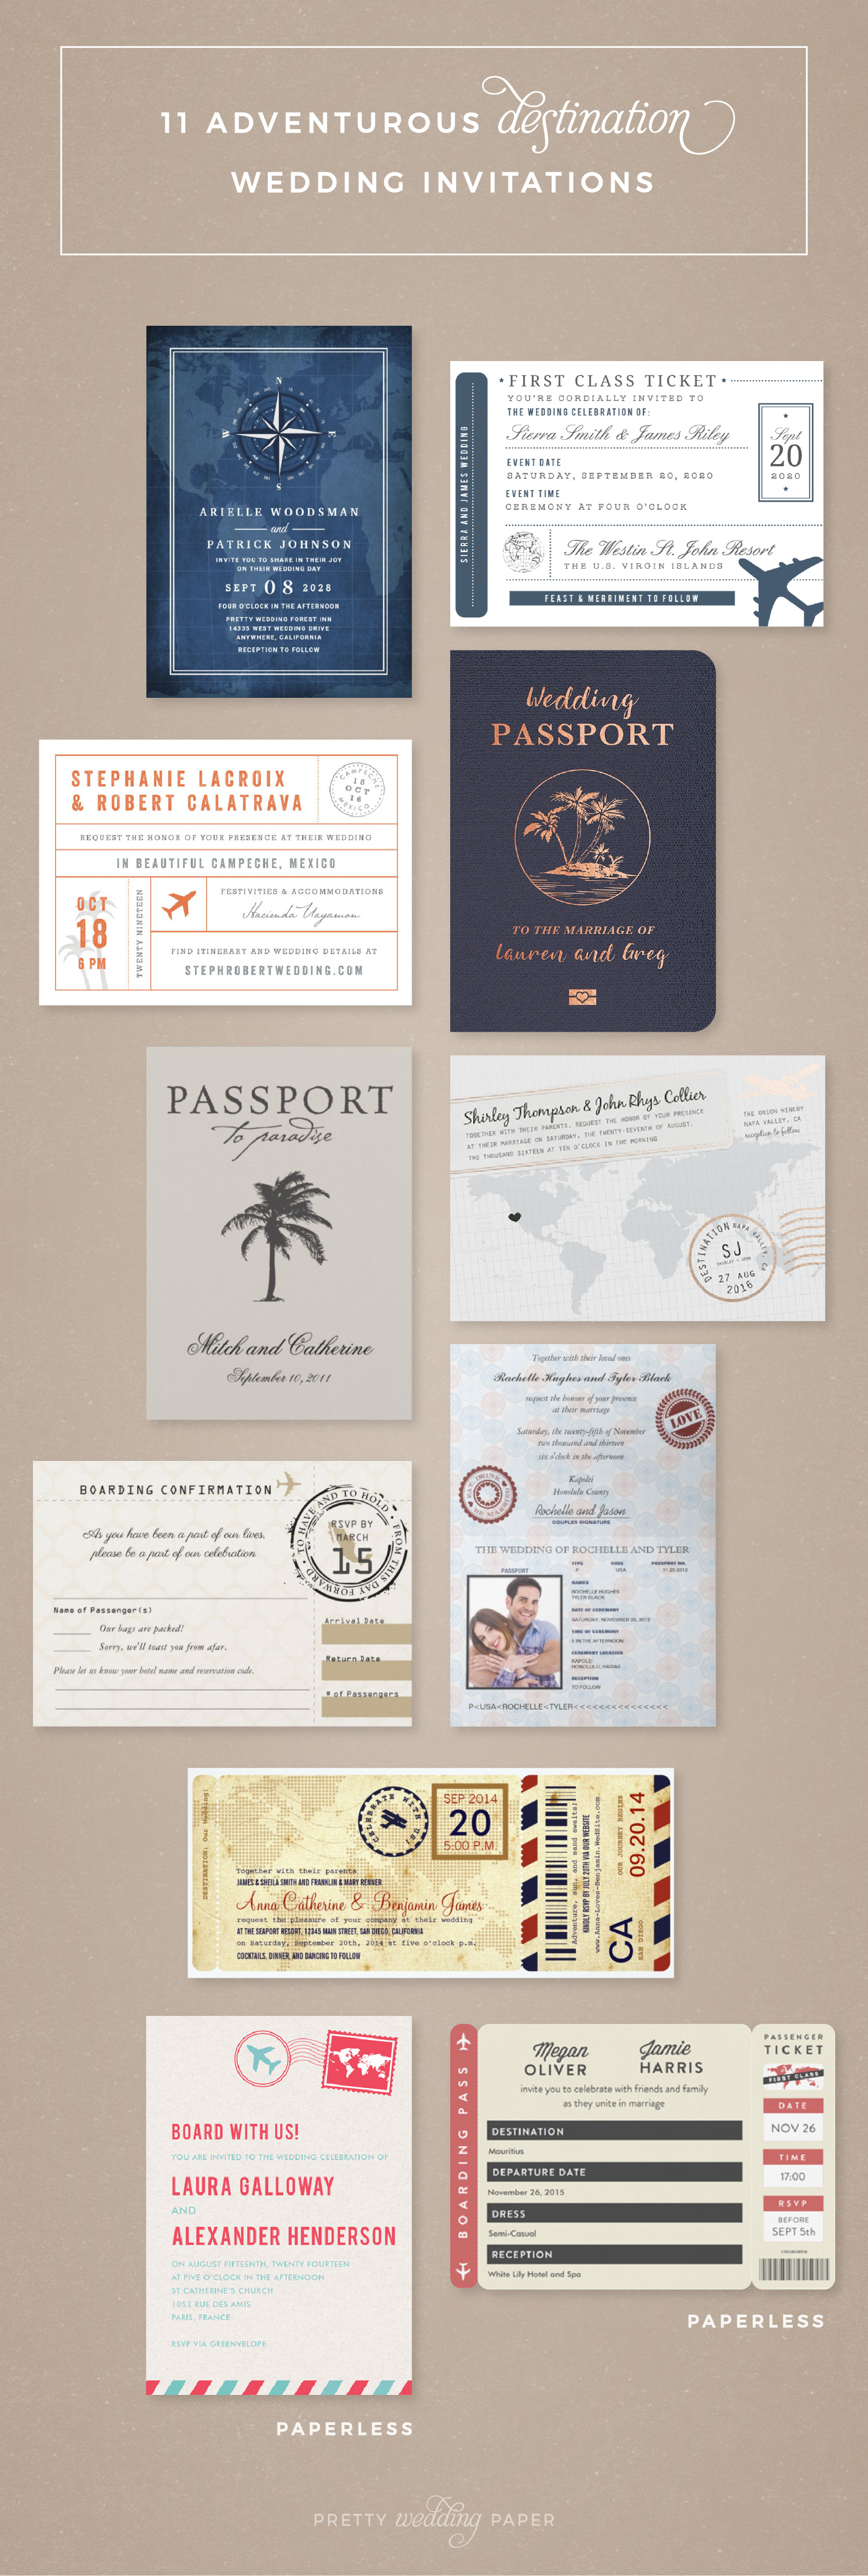 11 Destination Themed Wedding Invitations, lined up on a brown background